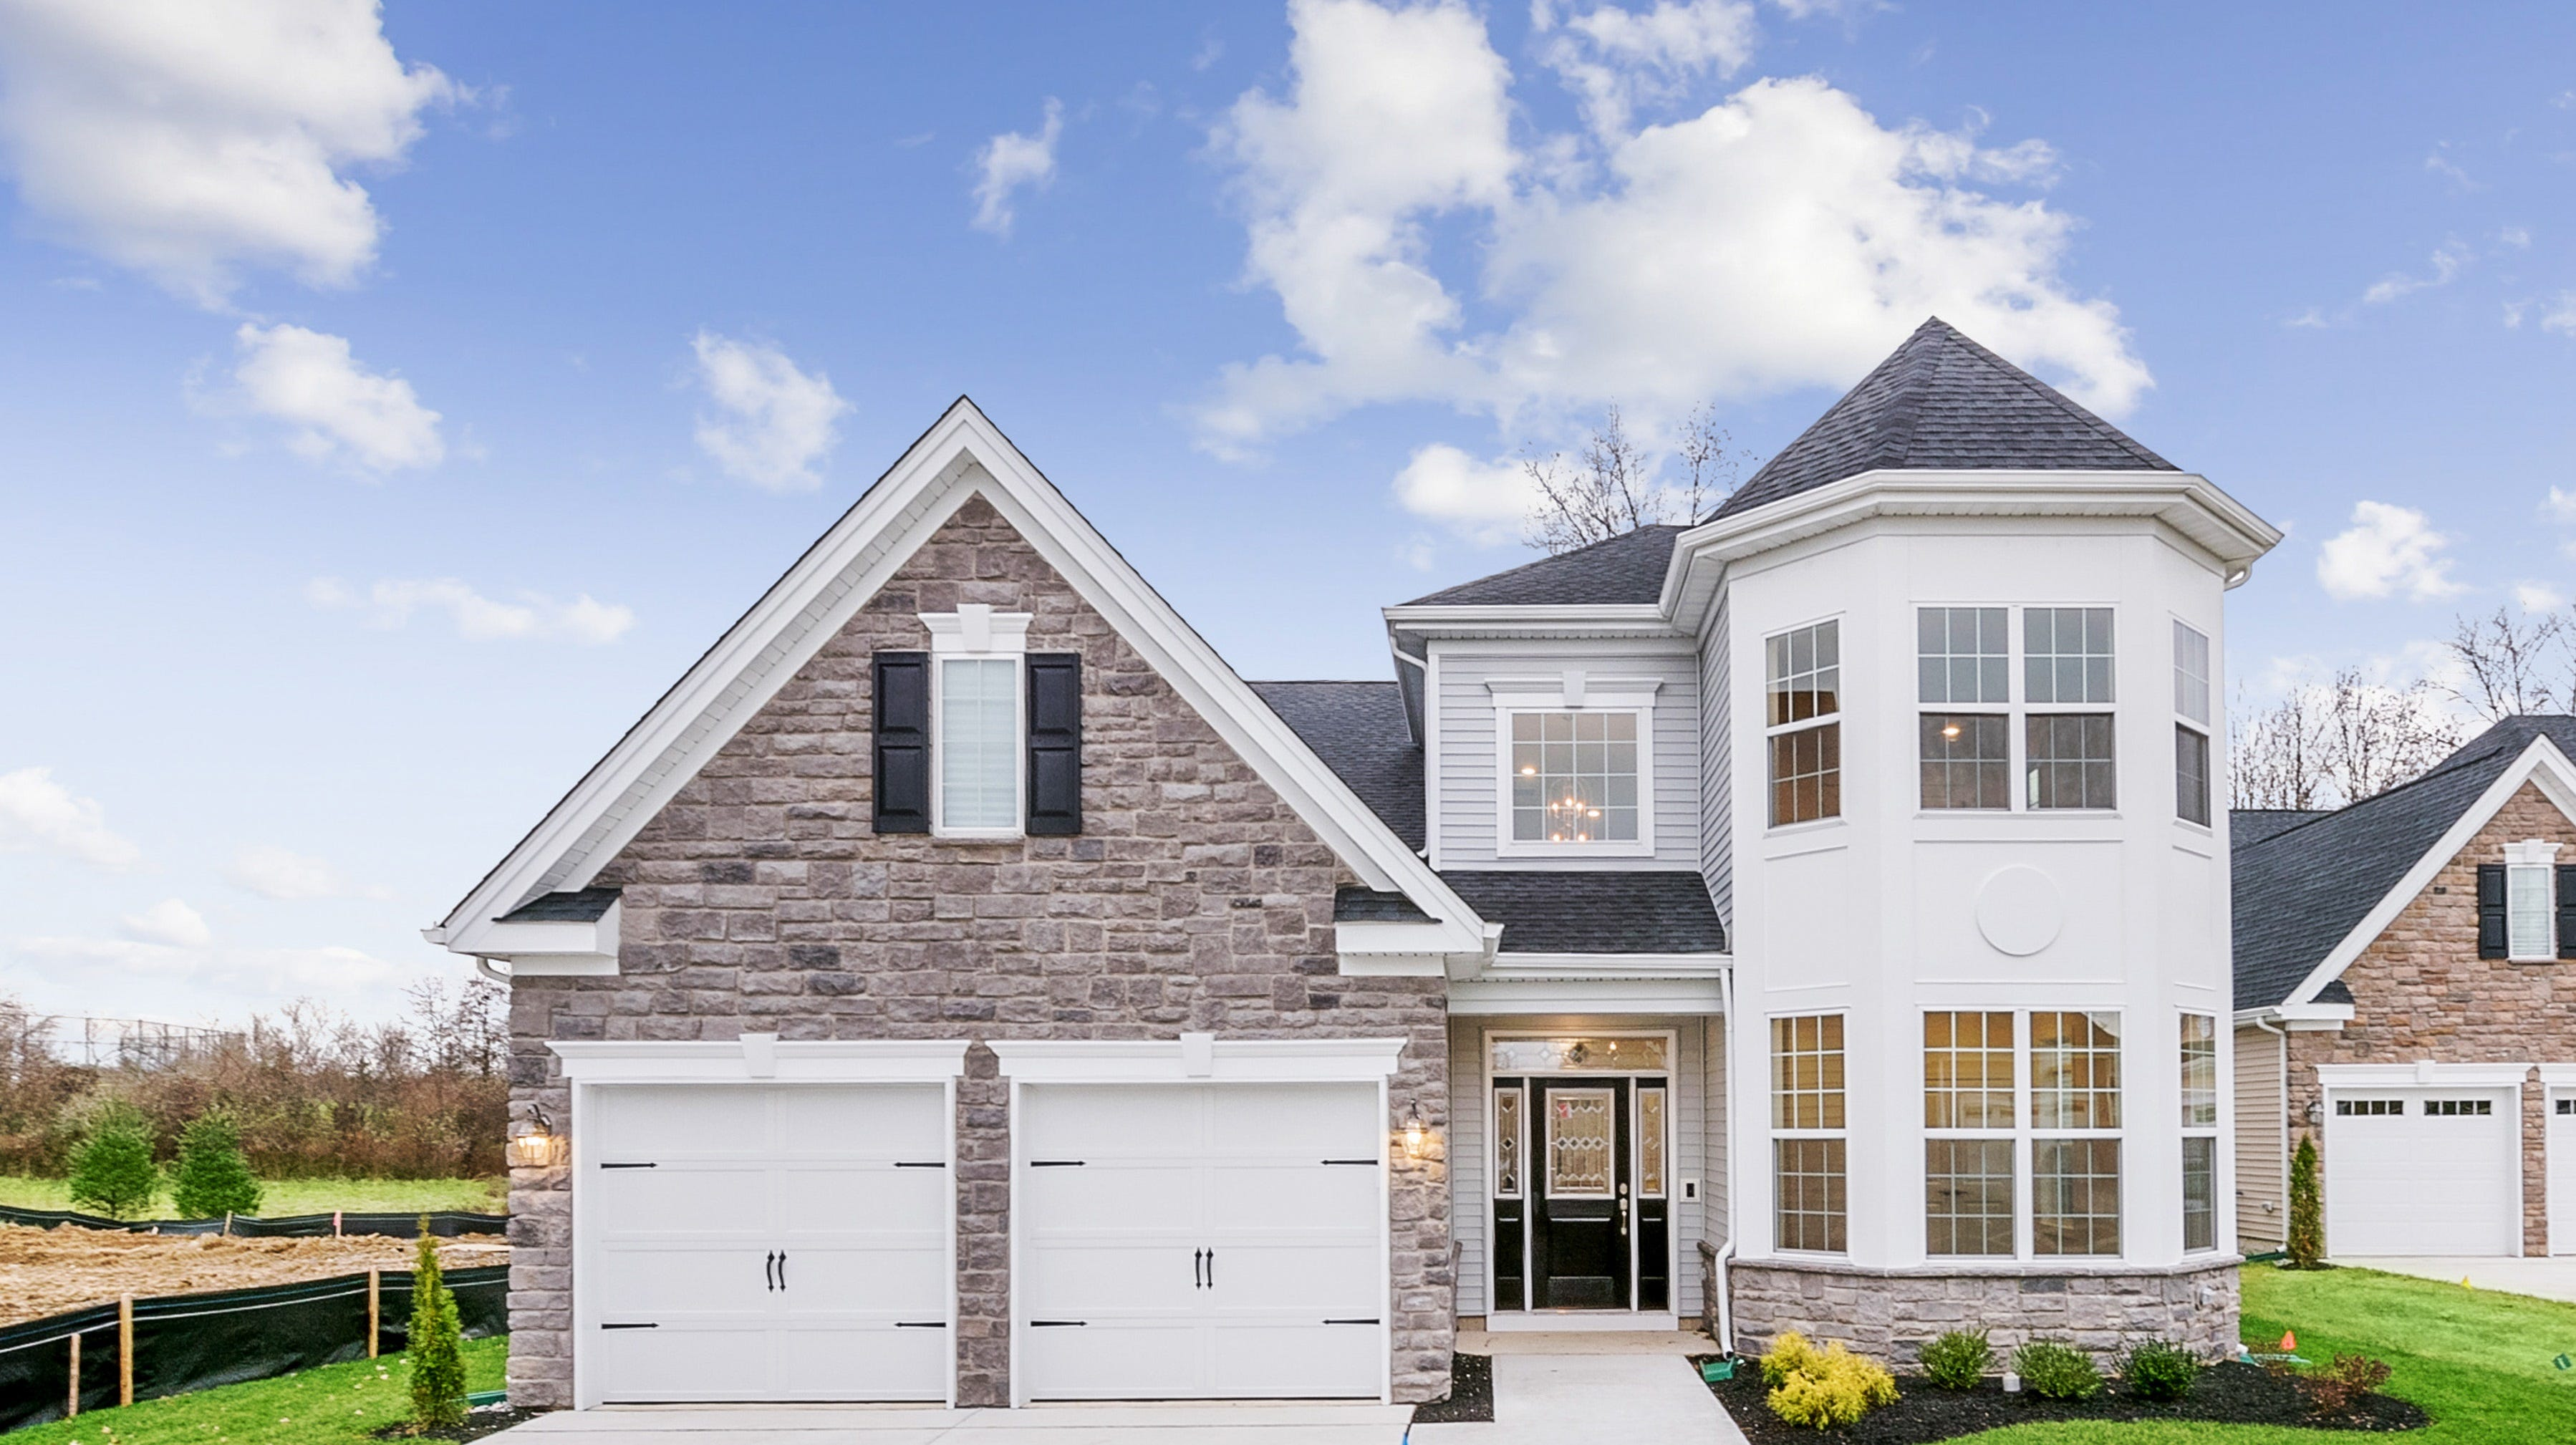 Joyce Ann Staples has just listed this newly built home at 31 Bernini Way in Venue at Princeton Park, an adult community in the Monmouth Junction section of South Brunswick.